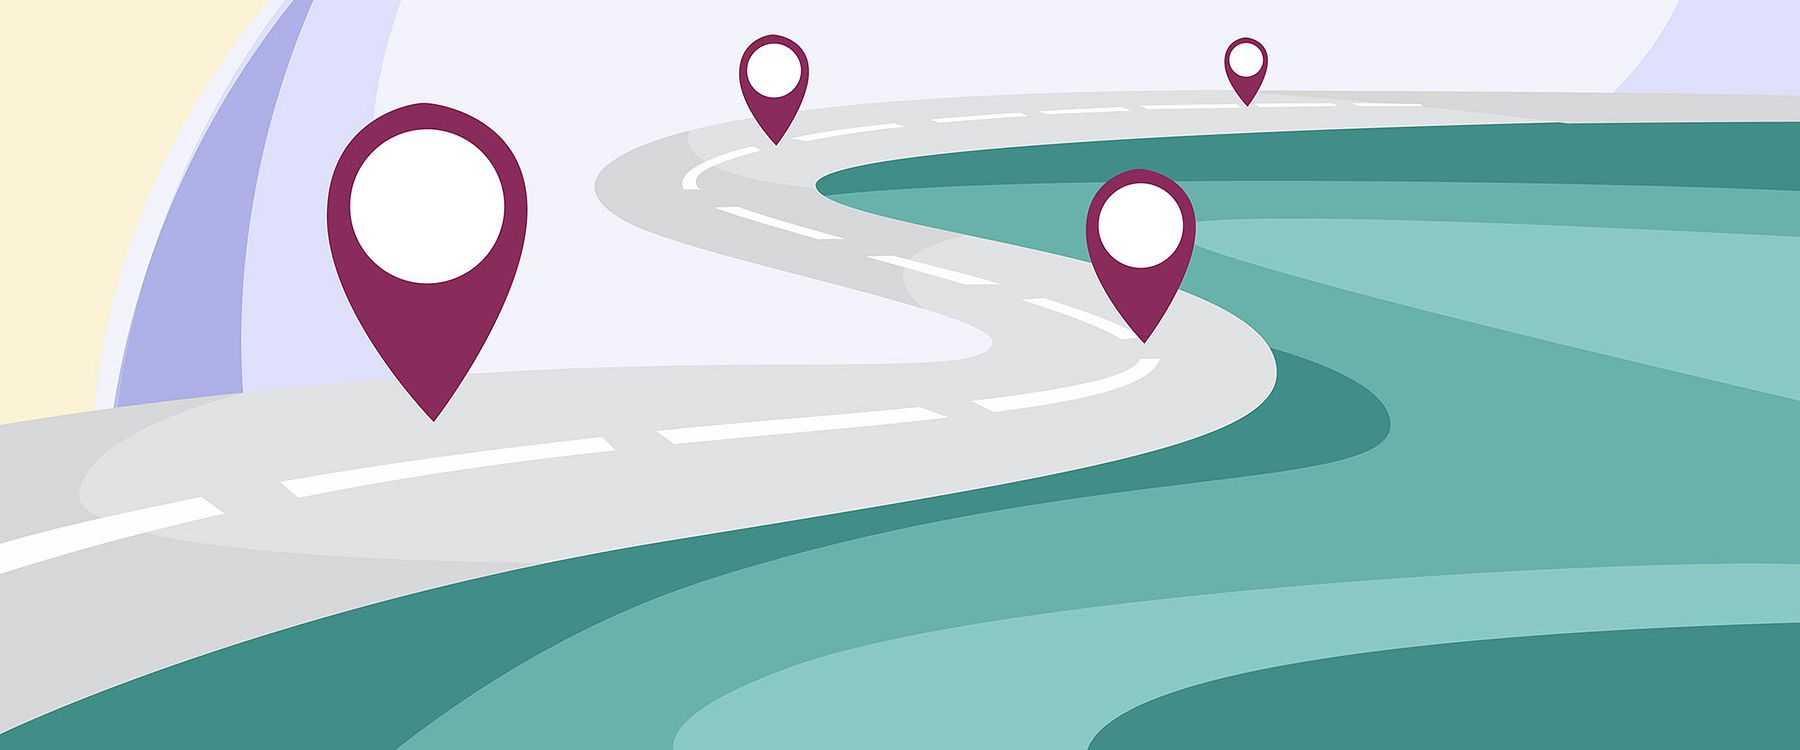 stylized illustration of a road and multiple map markers